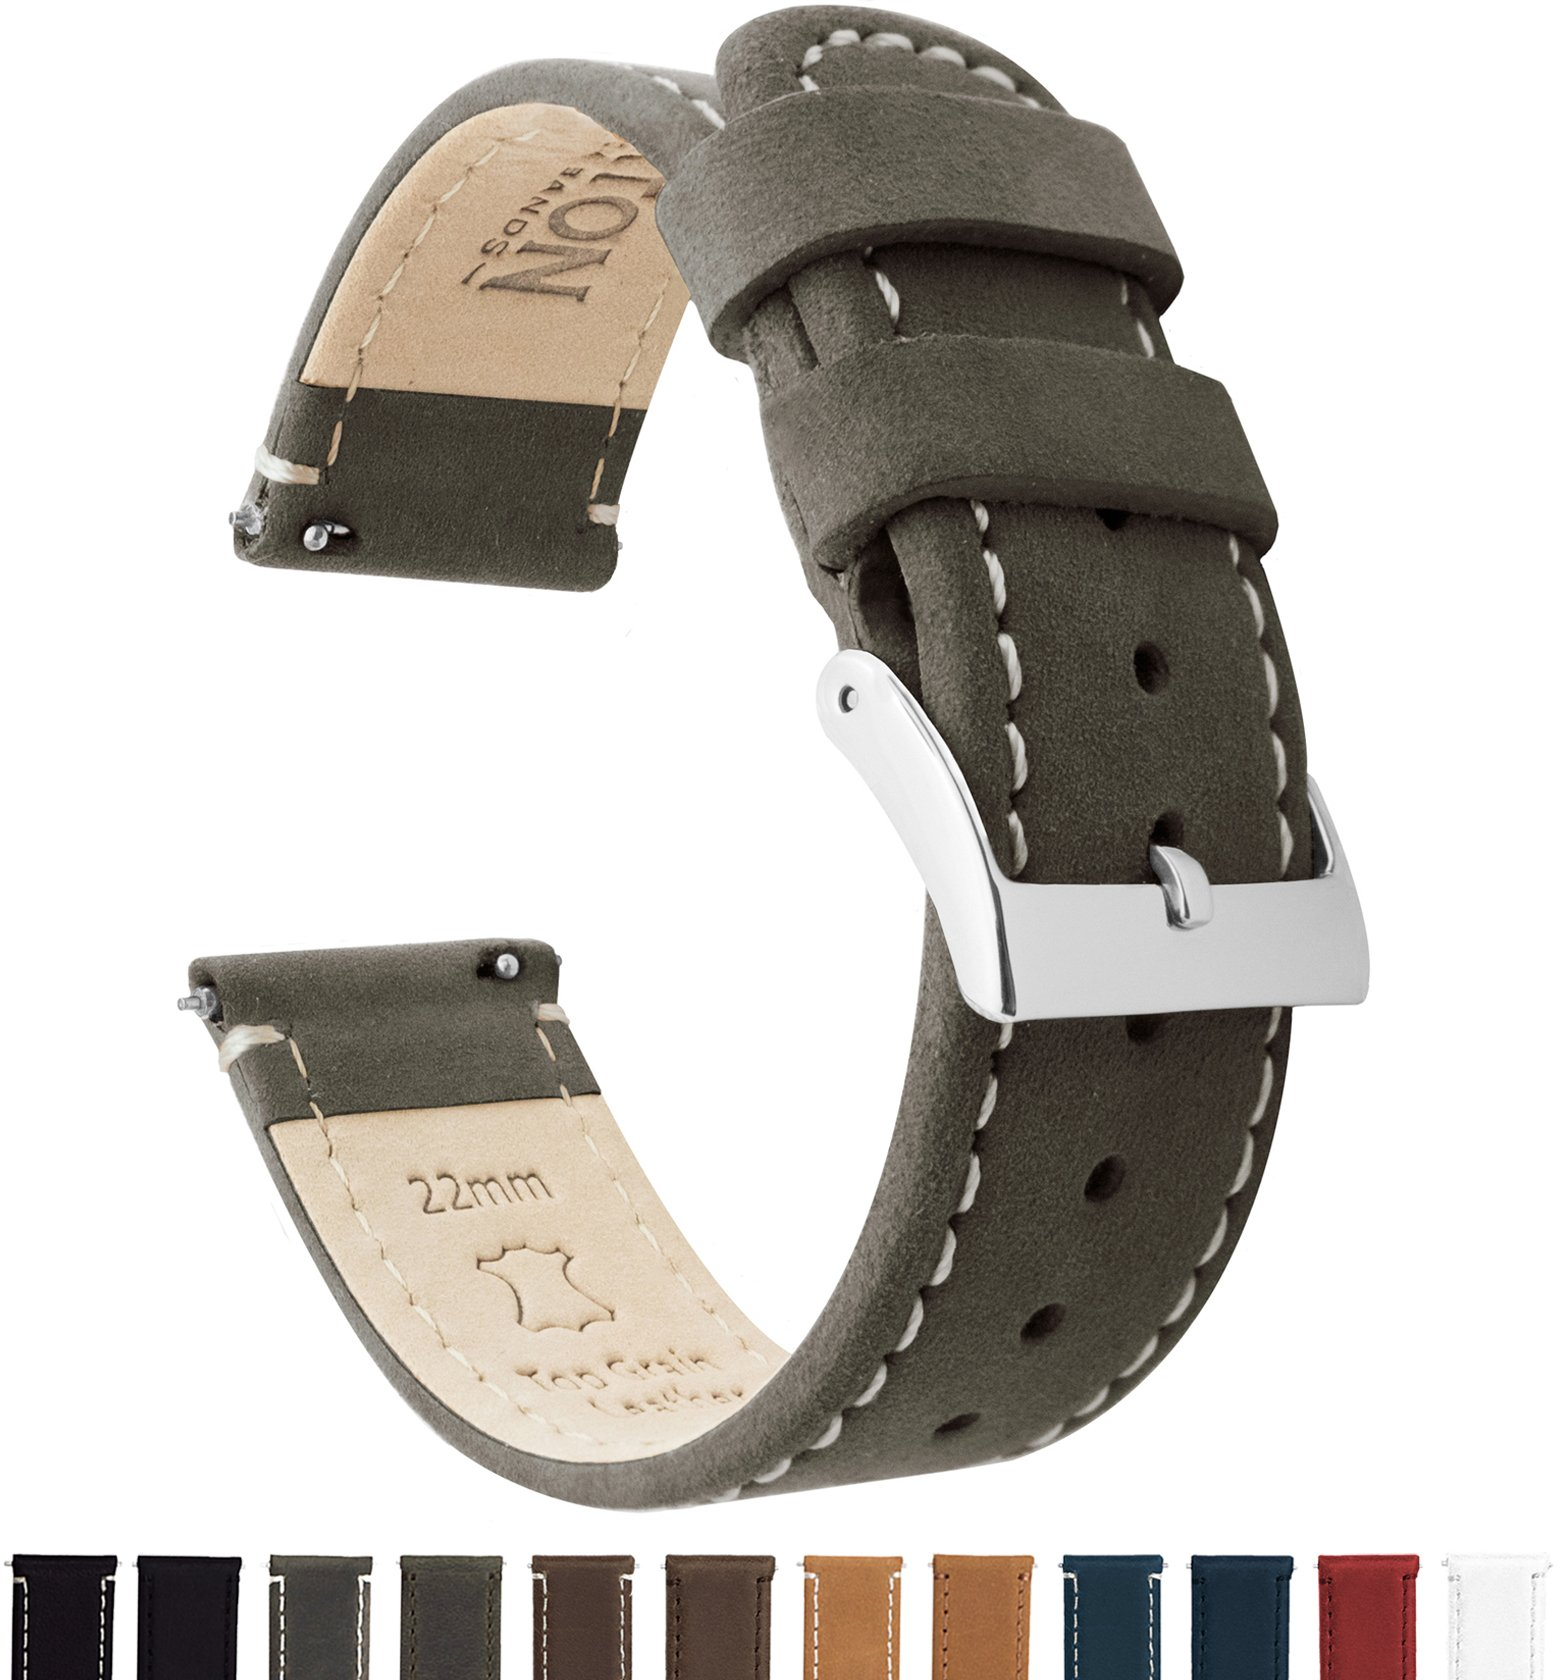 Barton Quick Release Top Grain Leather Watch Band Strap - Choose Color - 16mm, 18mm, 20mm, 22mm or 24mm - Espresso/Linen 24mm